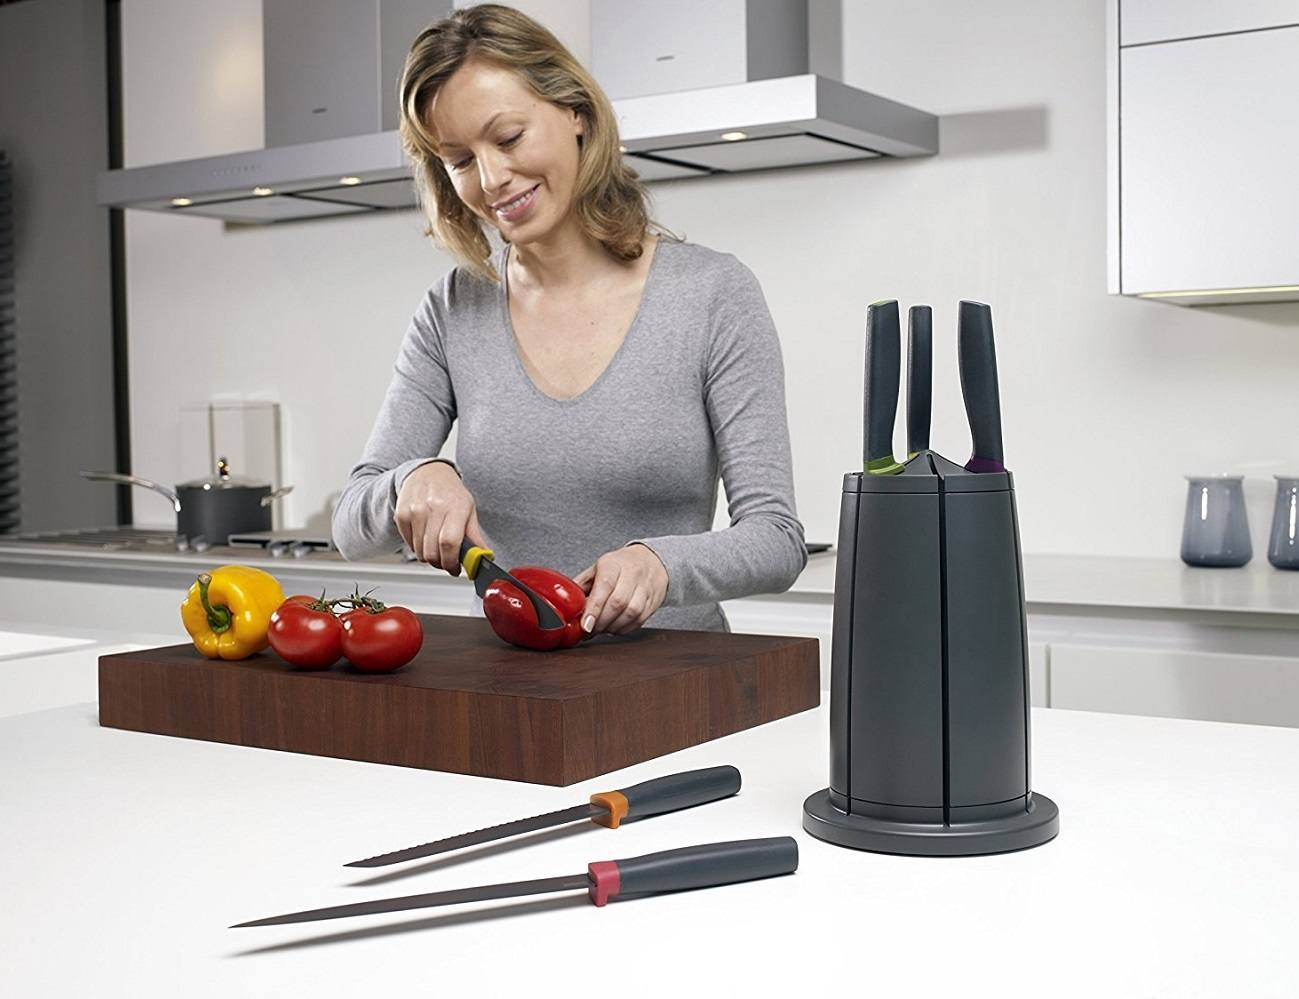 Elevate Knives Carousel Set – Rotating Knife Block by Joseph Joseph